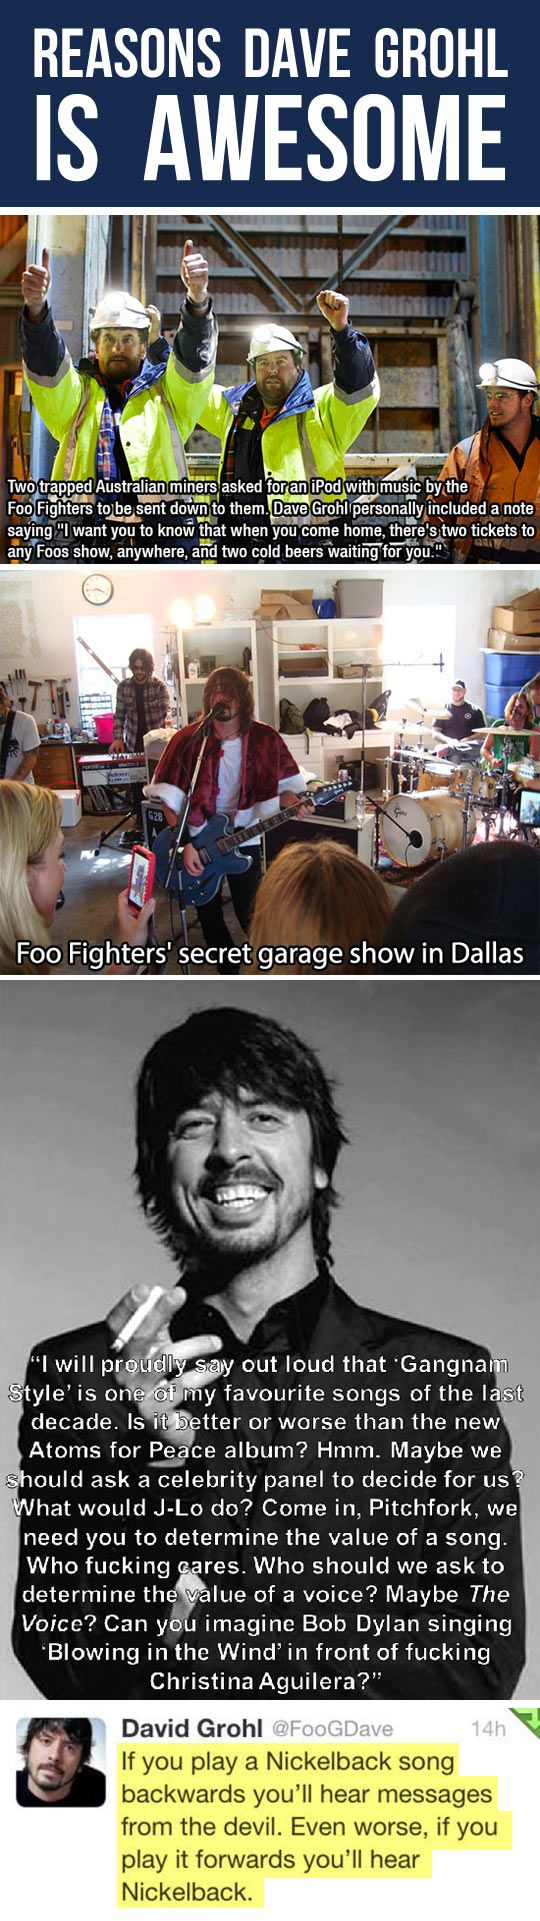 I can safely say that Dave Grohl is one of my favorite people in the music industry...perhaps this will help y'all understand my sentiment.